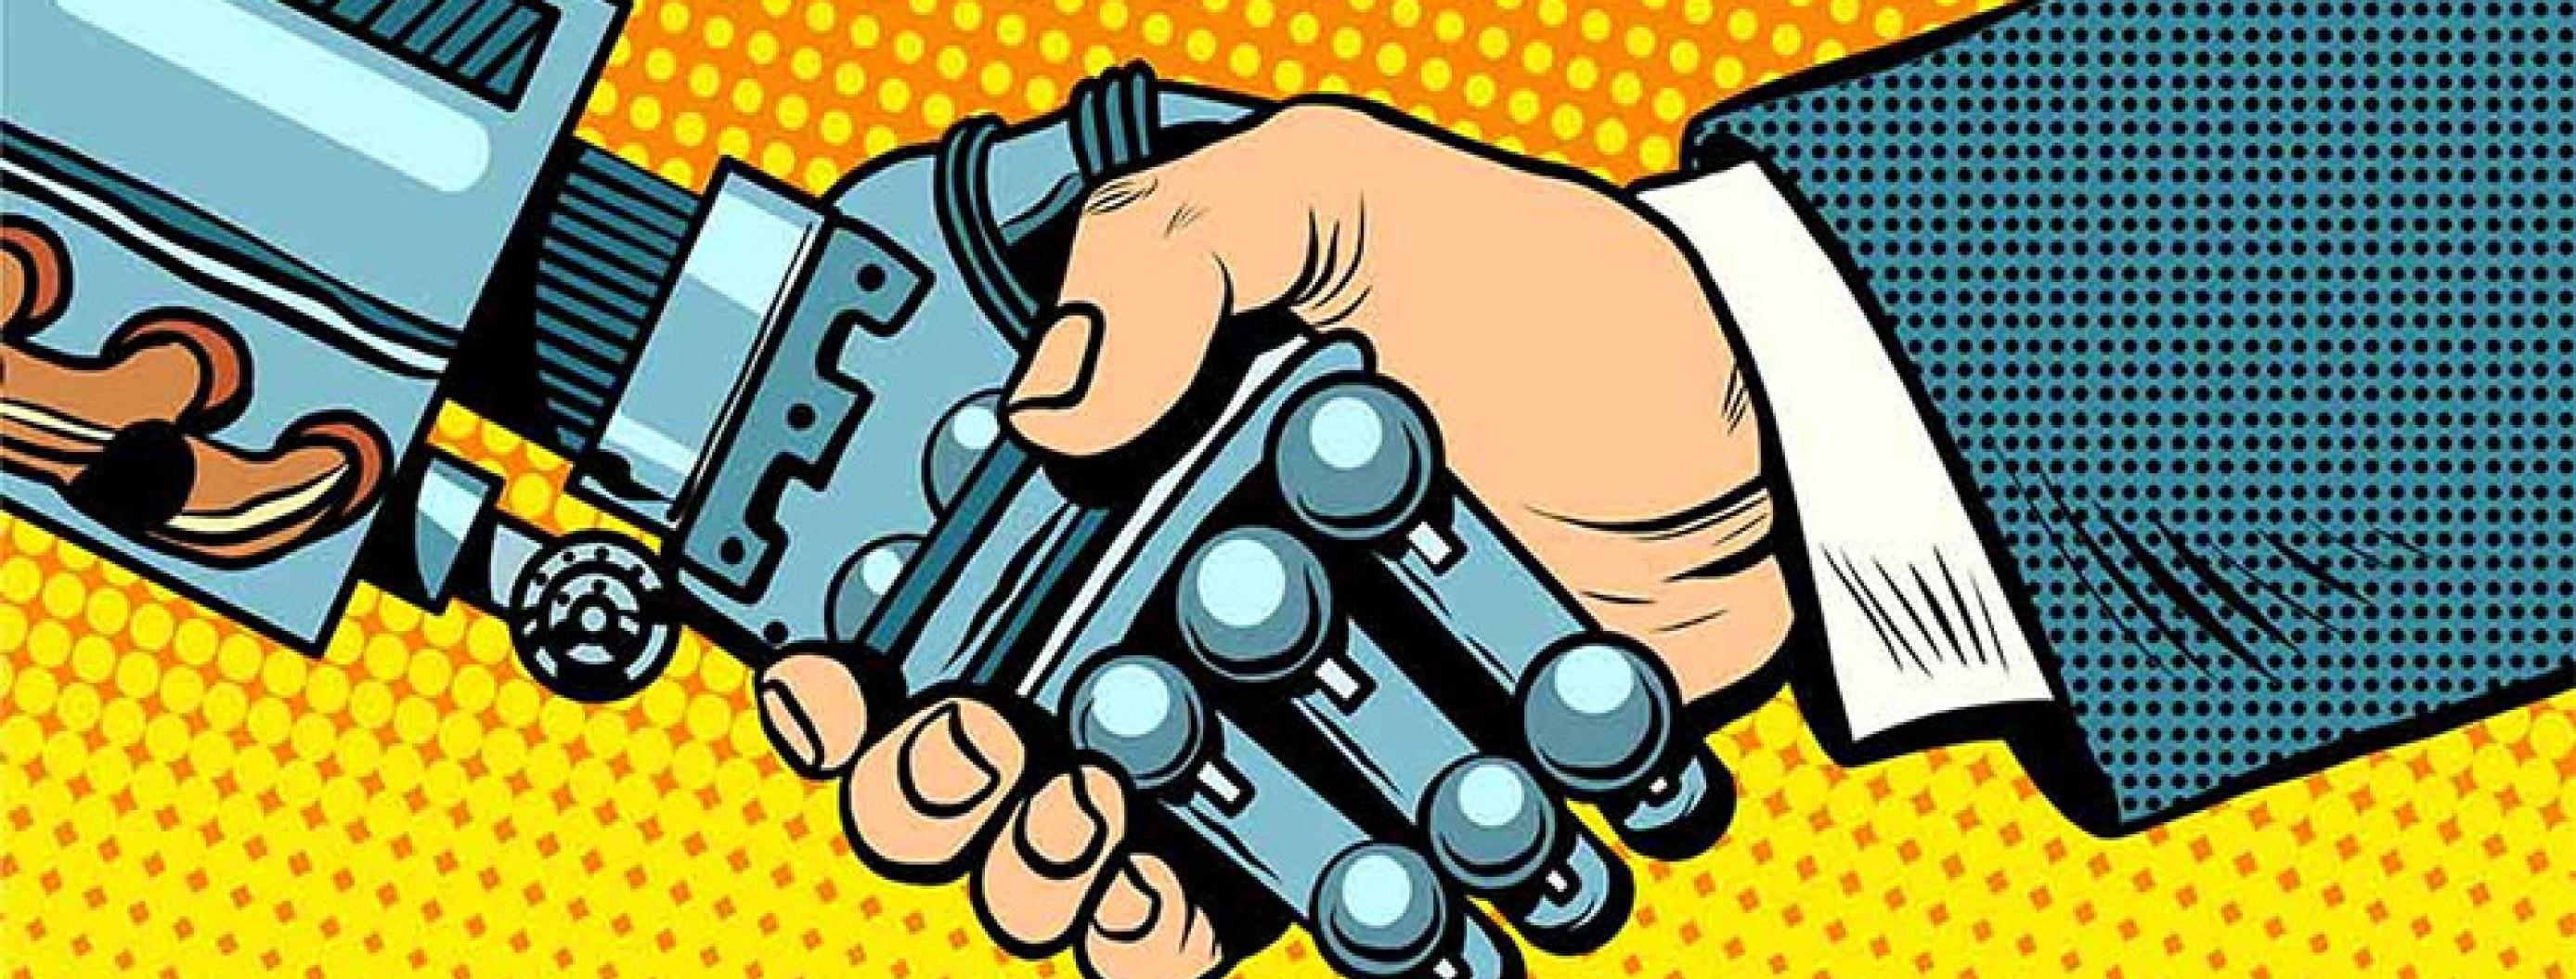 How Chatbots Will Soon Change Your Life